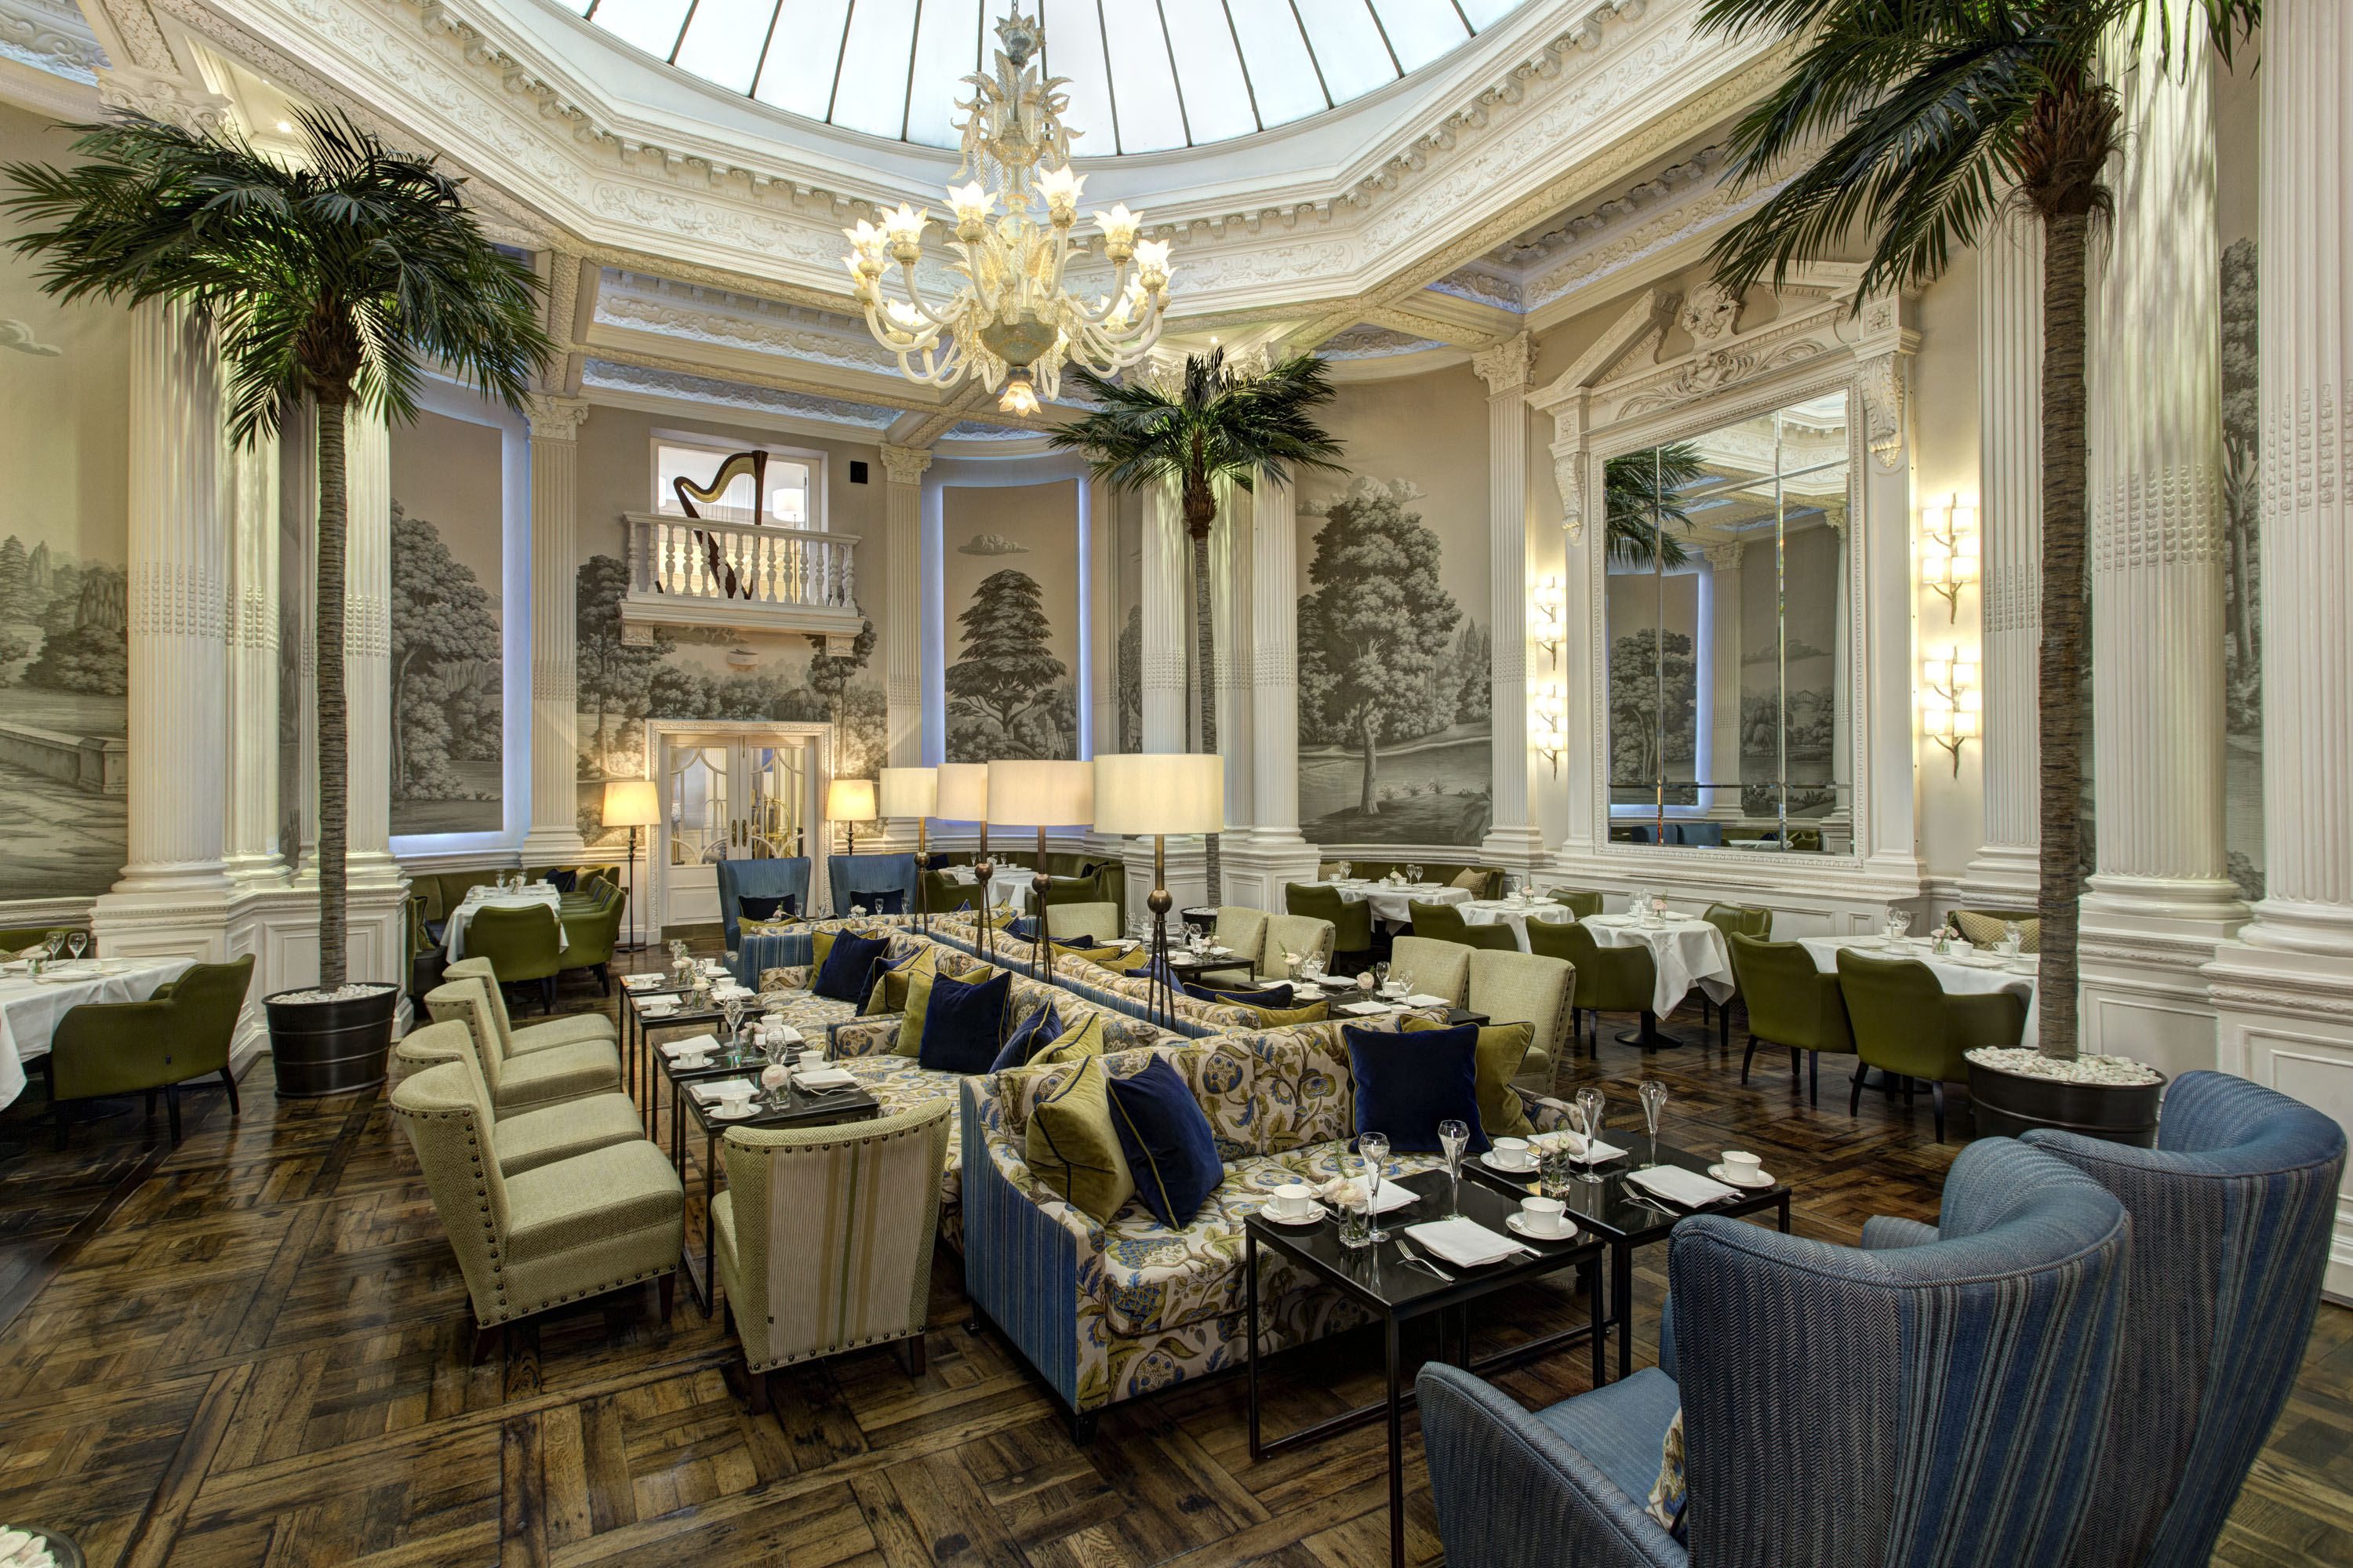 The Palm Court in The Balmoral Hotel